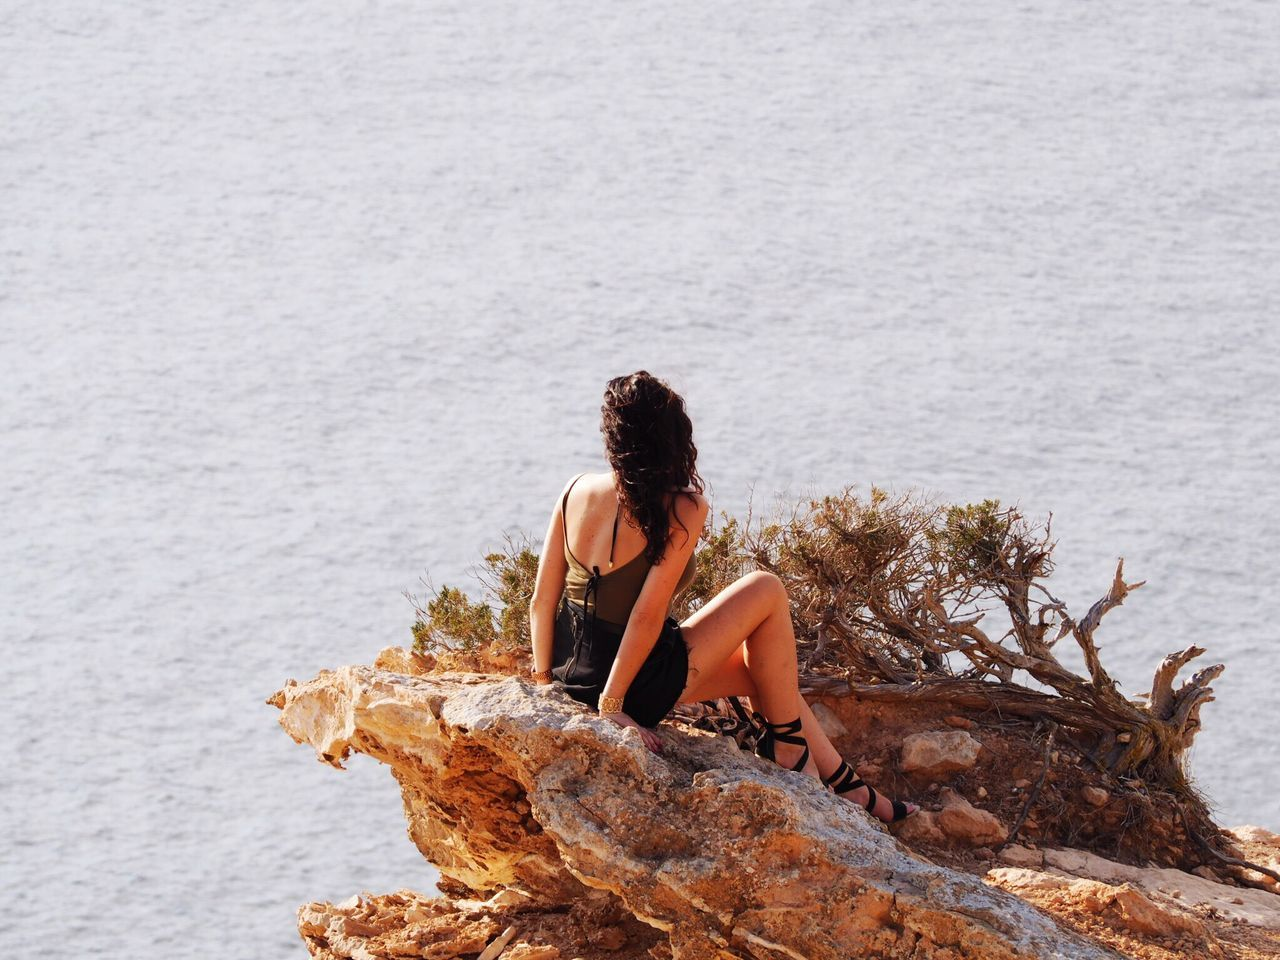 sitting, rock - object, sea, leisure activity, nature, water, day, two people, young adult, togetherness, outdoors, young women, full length, real people, beauty in nature, adult, people, adults only